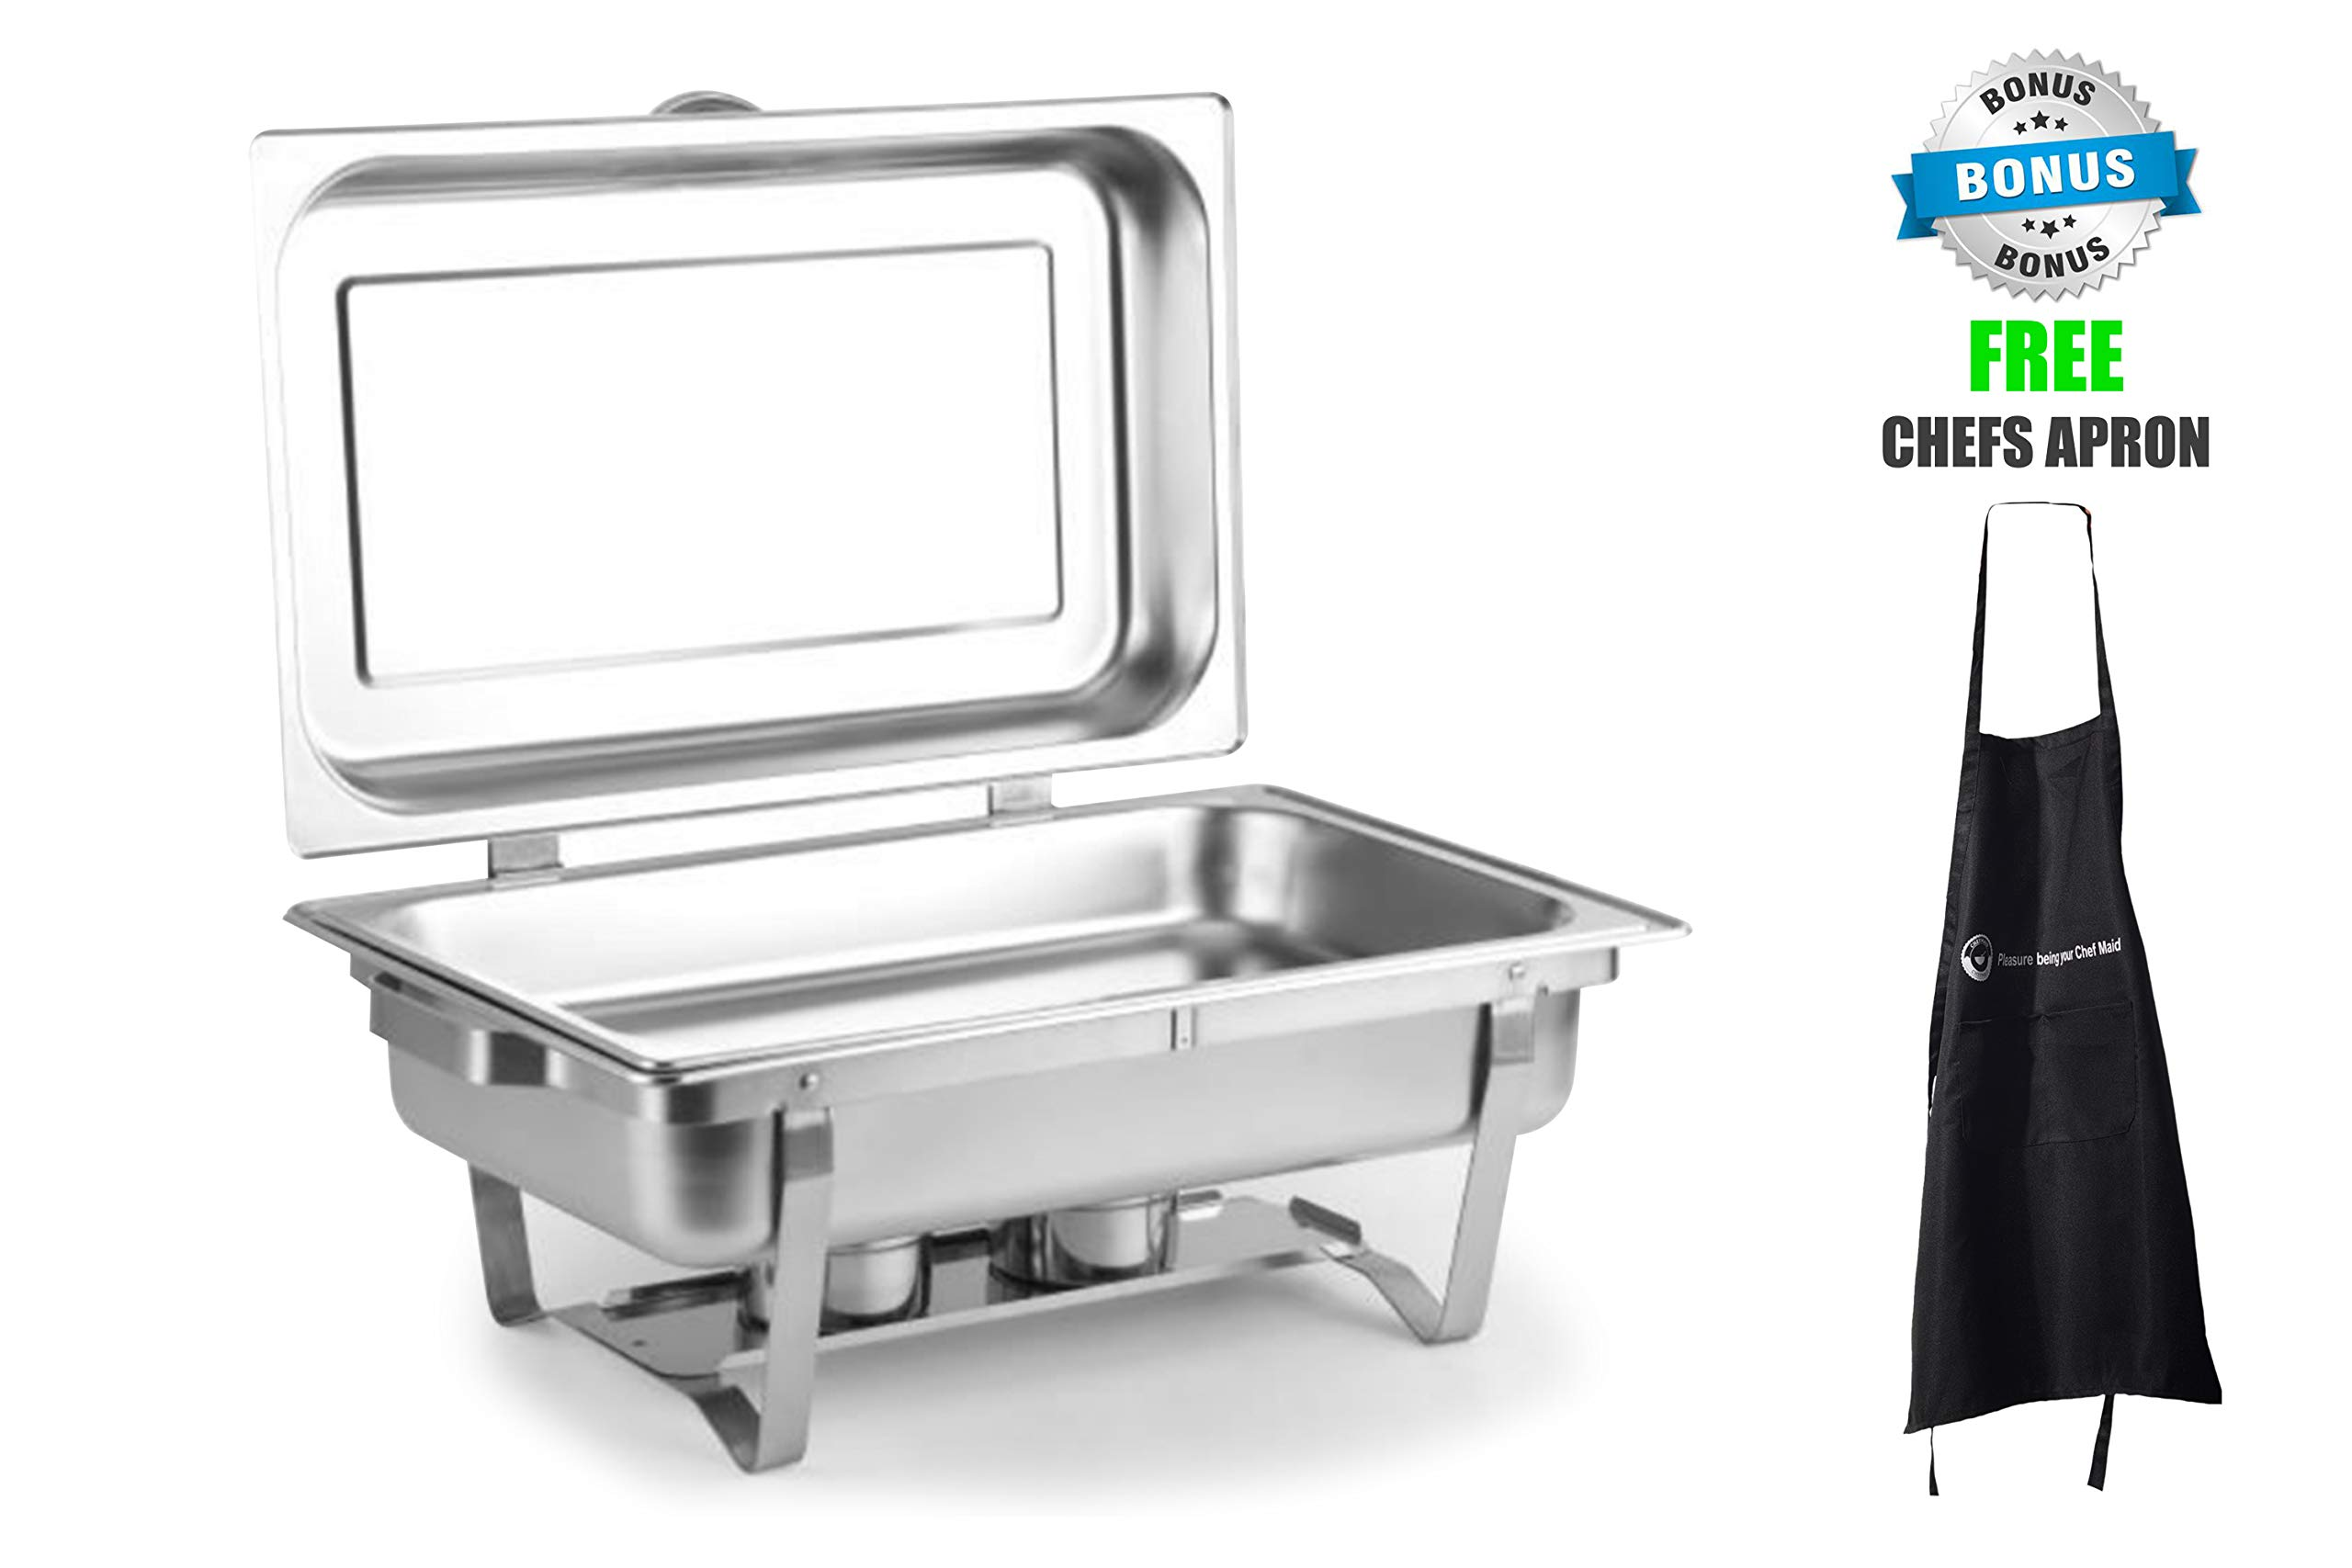 ChefMaid 8 Quart Full Size Stainless Steel Chafer set HINGED DOME COVER with Folding Frame + FREE CHEFS APRON